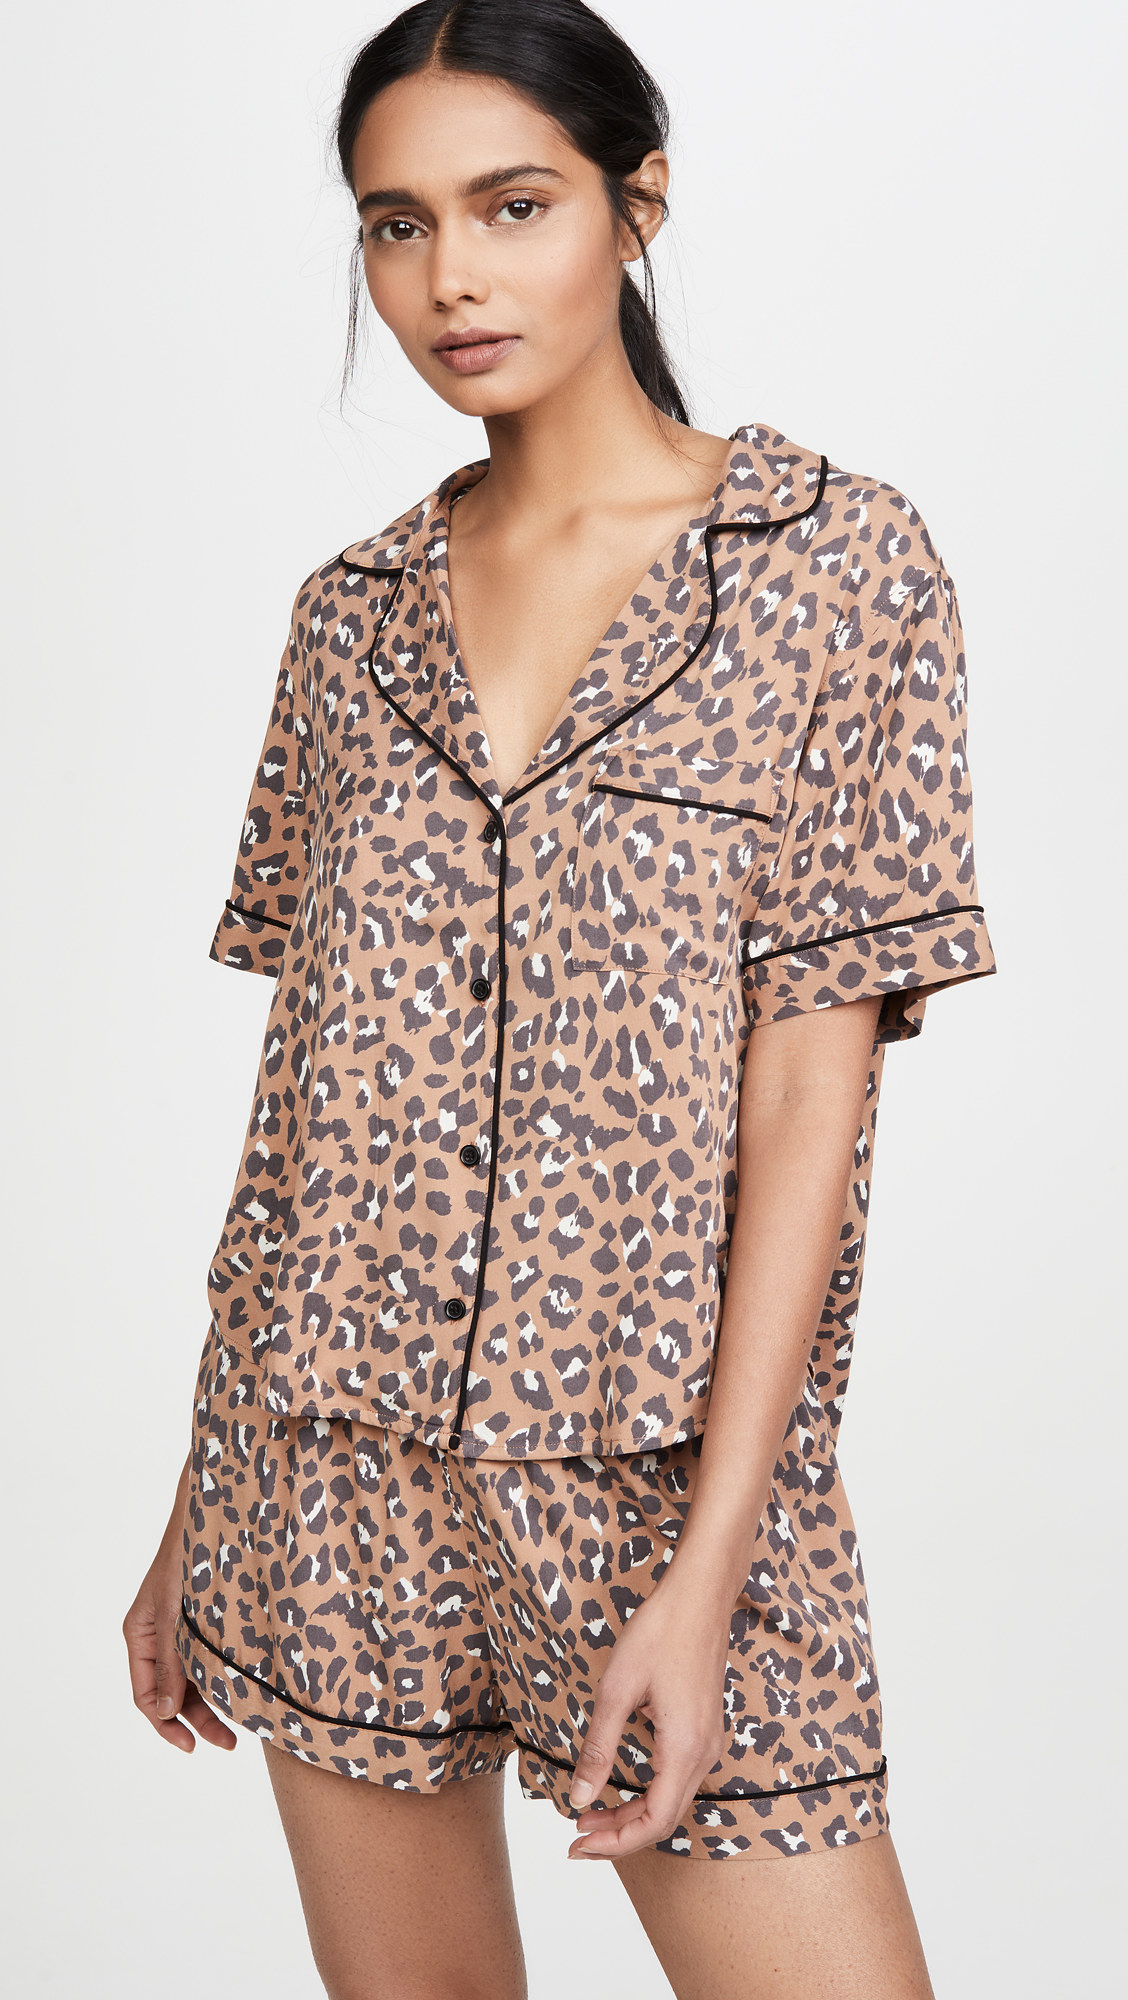 model wearing tannish-brown leopard print pajamas: the top is short sleeves with a collar and has buttons in black down the middle, the bottoms are shorts and match